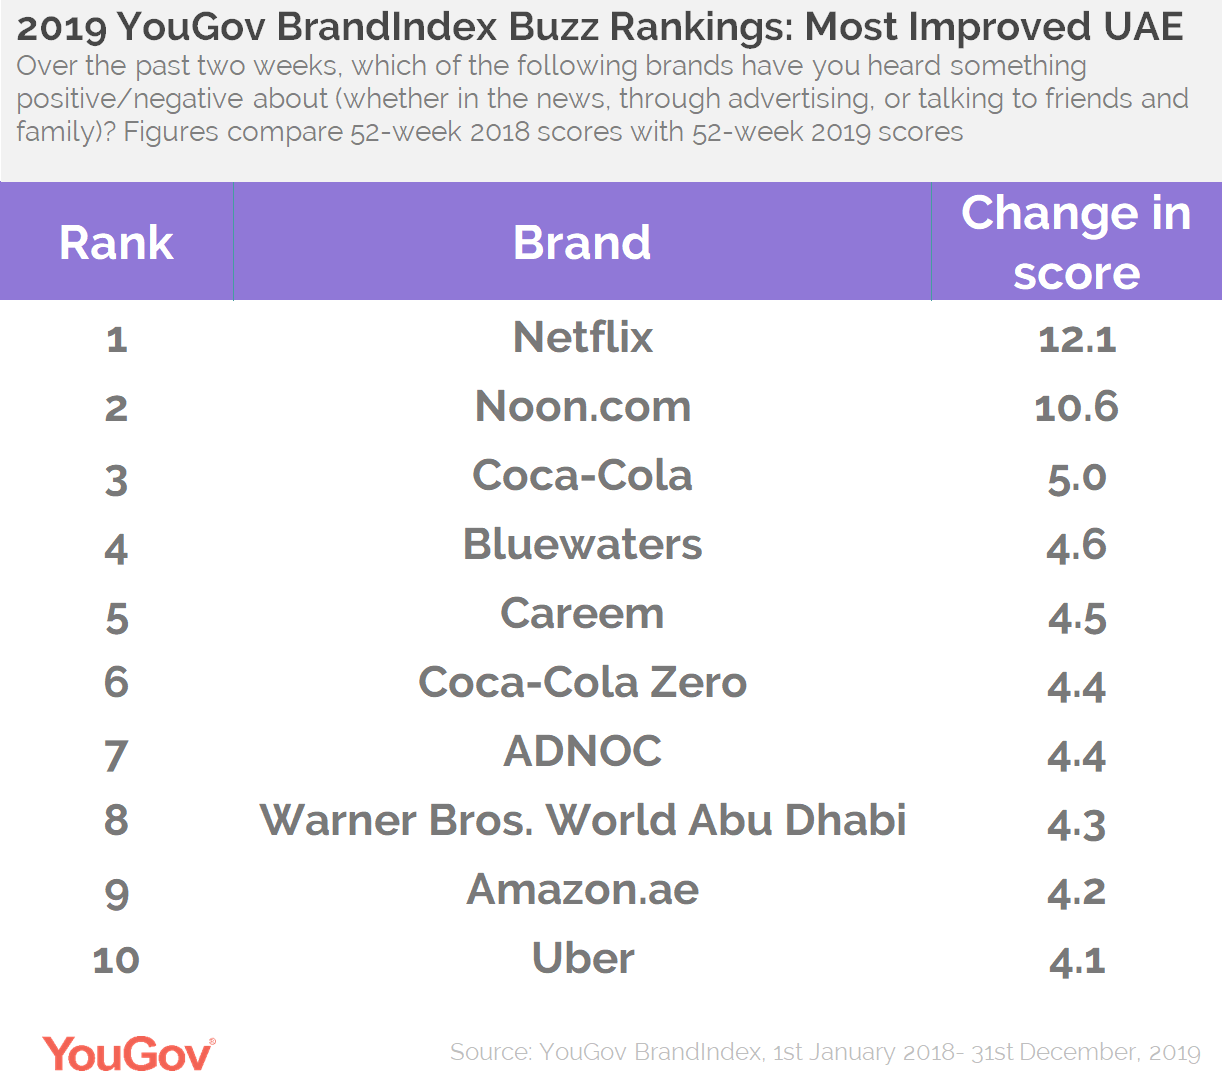 Buzz Rankings UAE- Top Improvers